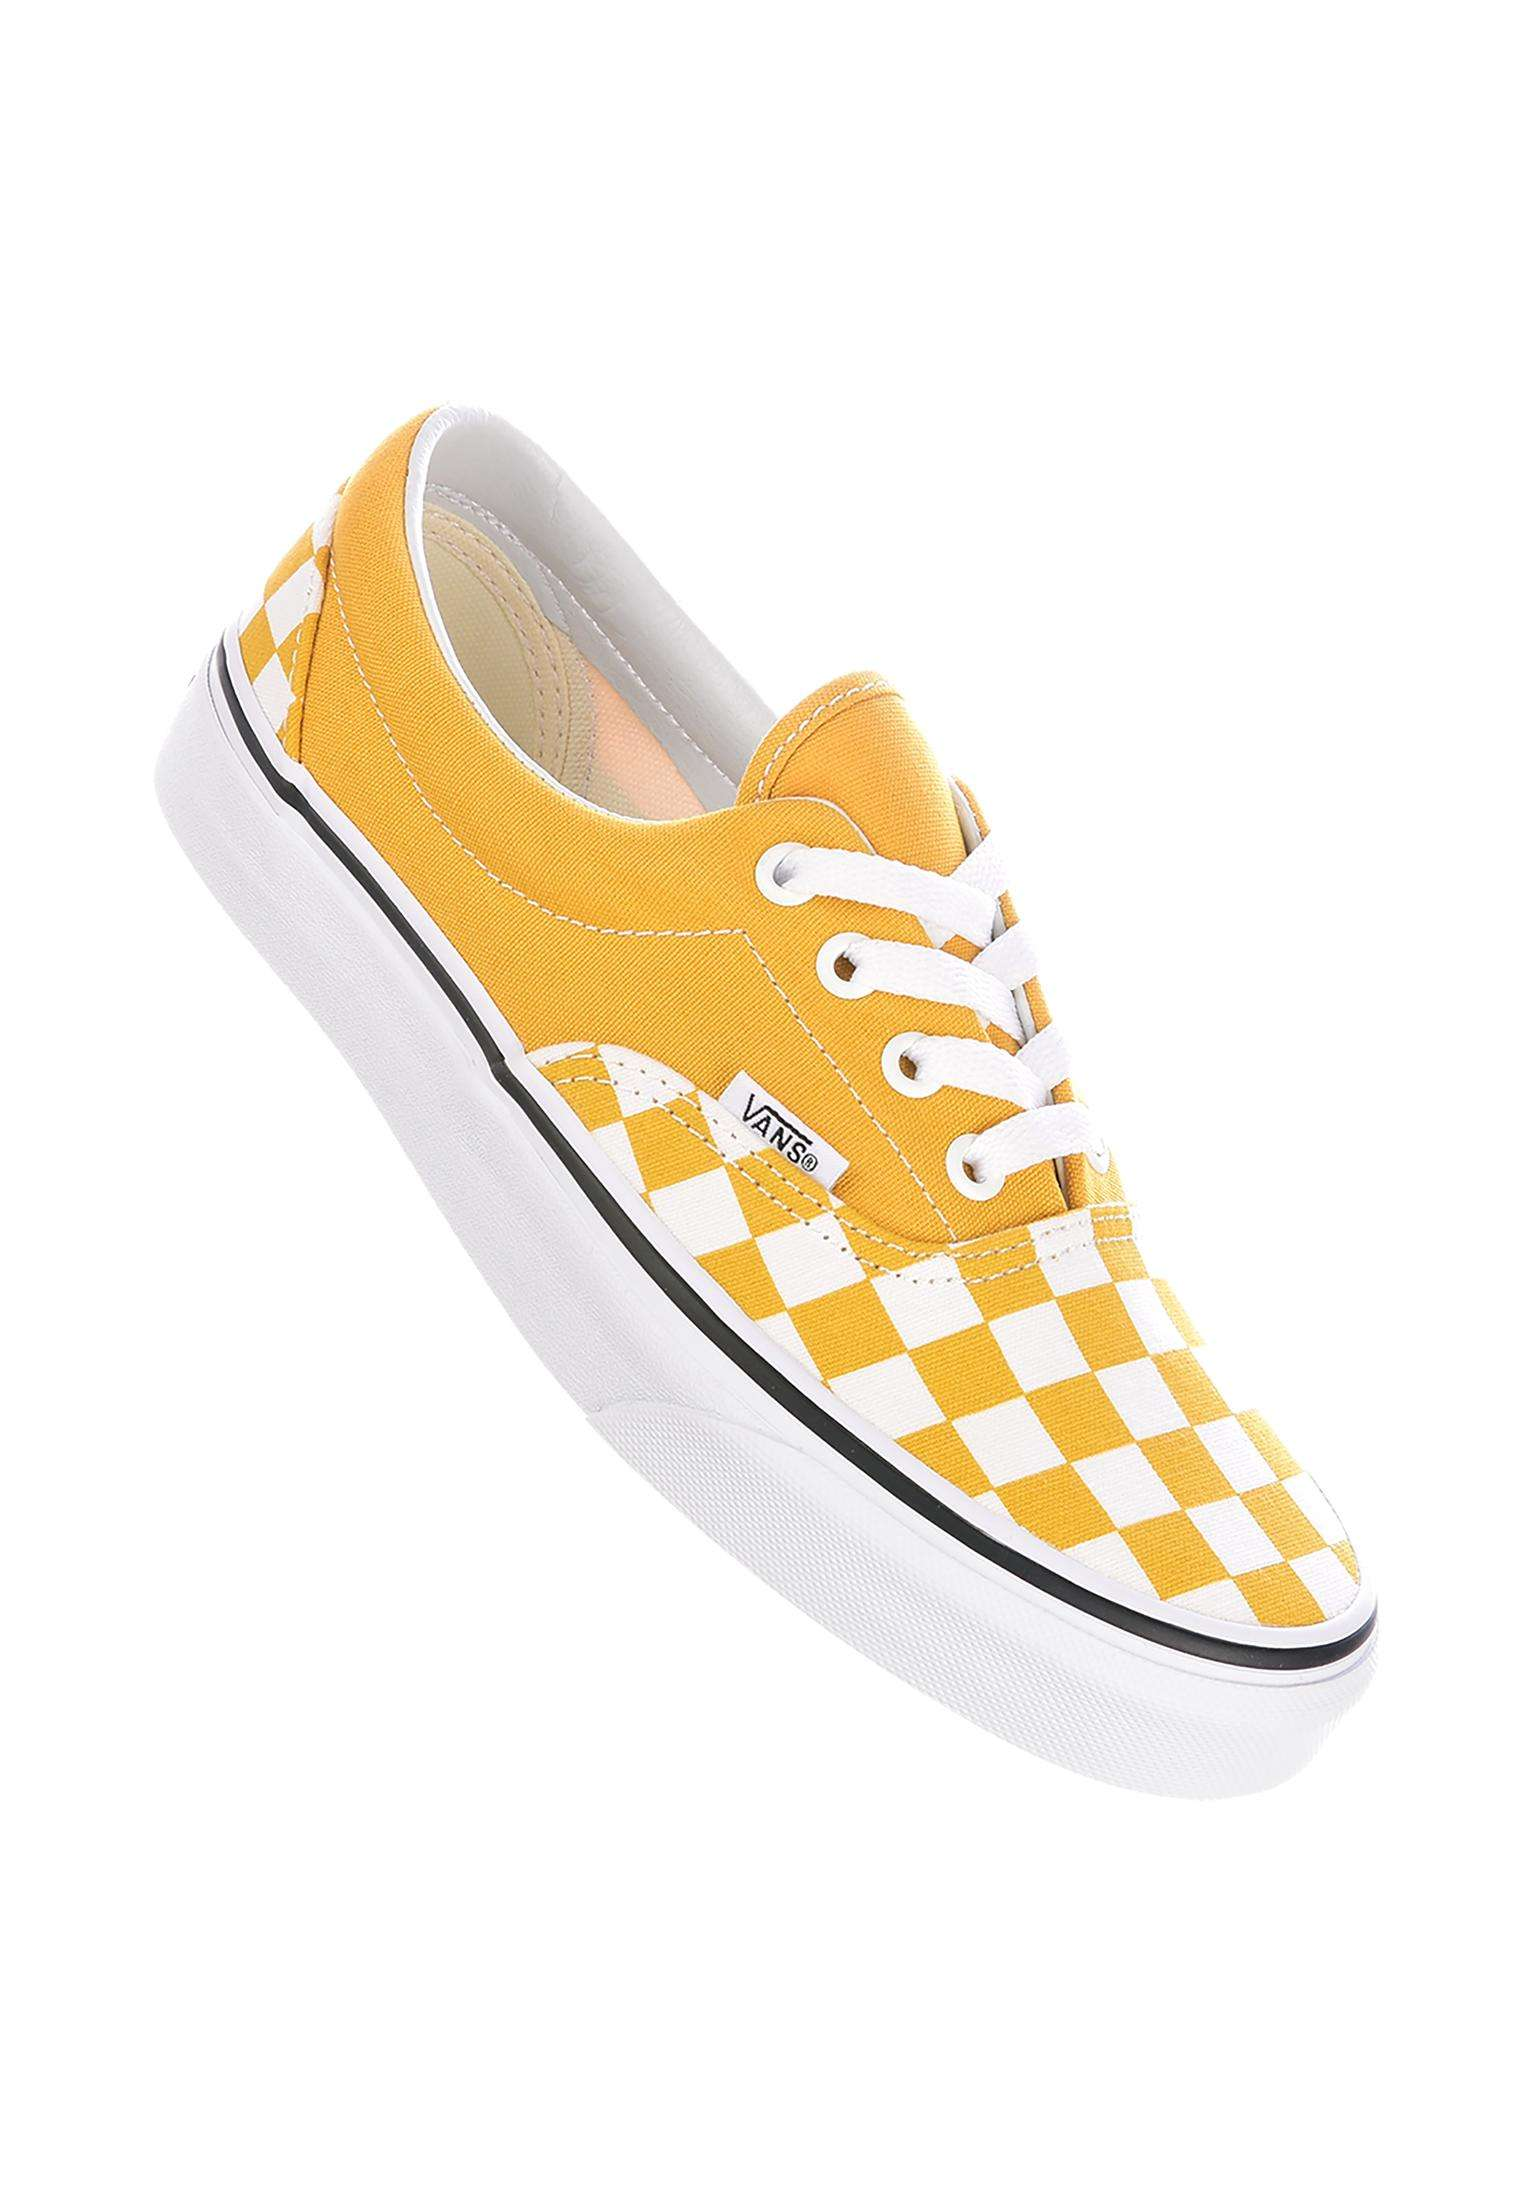 505ef41d4895b8 Era Classic Vans All Shoes in checkerboard yolkyellow-truewhite for Women